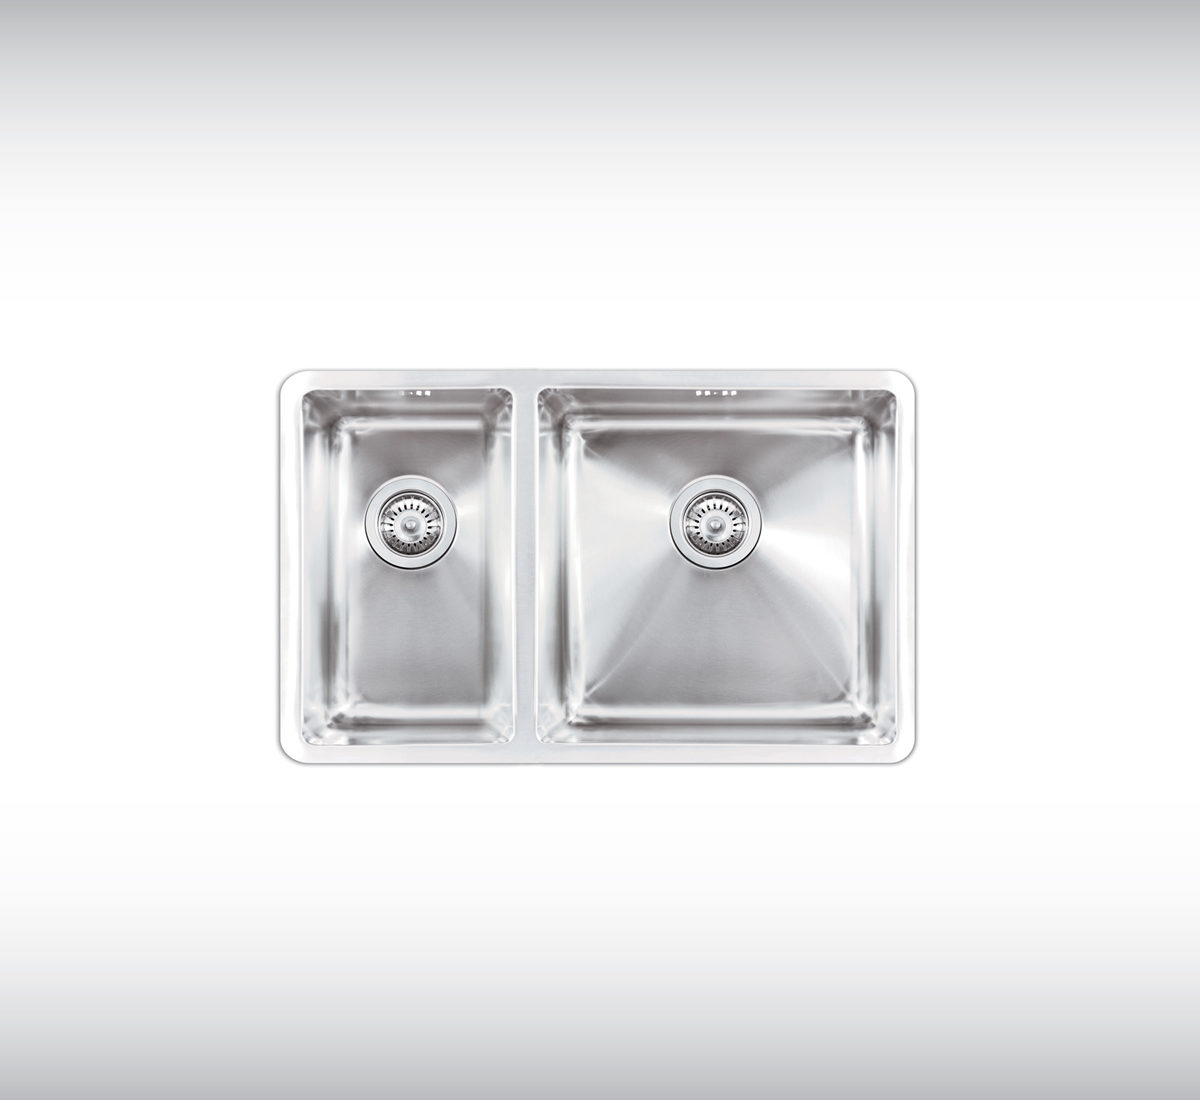 Stainless Steel Sink GINO-660R